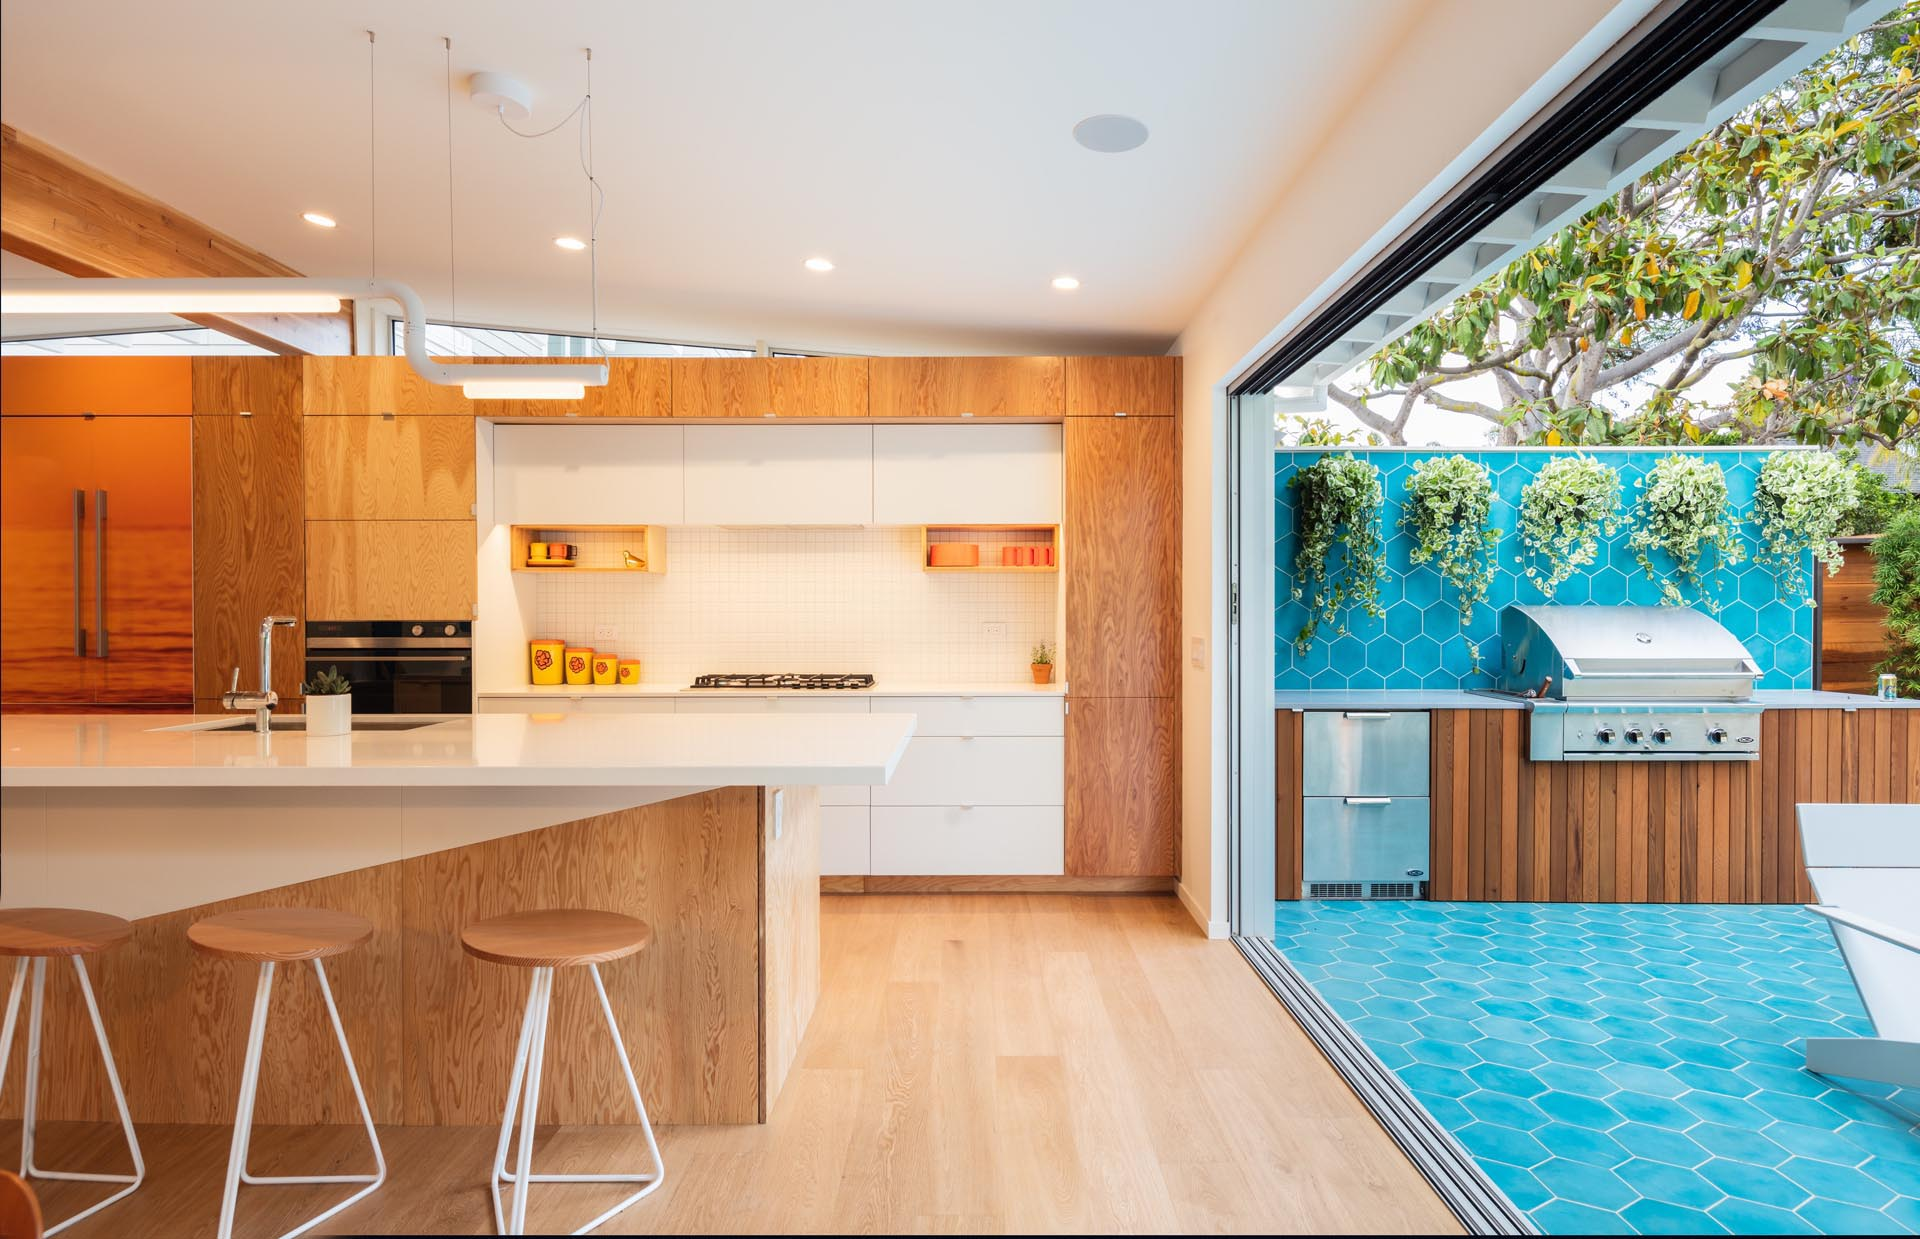 A large sliding door opens to the outdoor kitchen and yard.